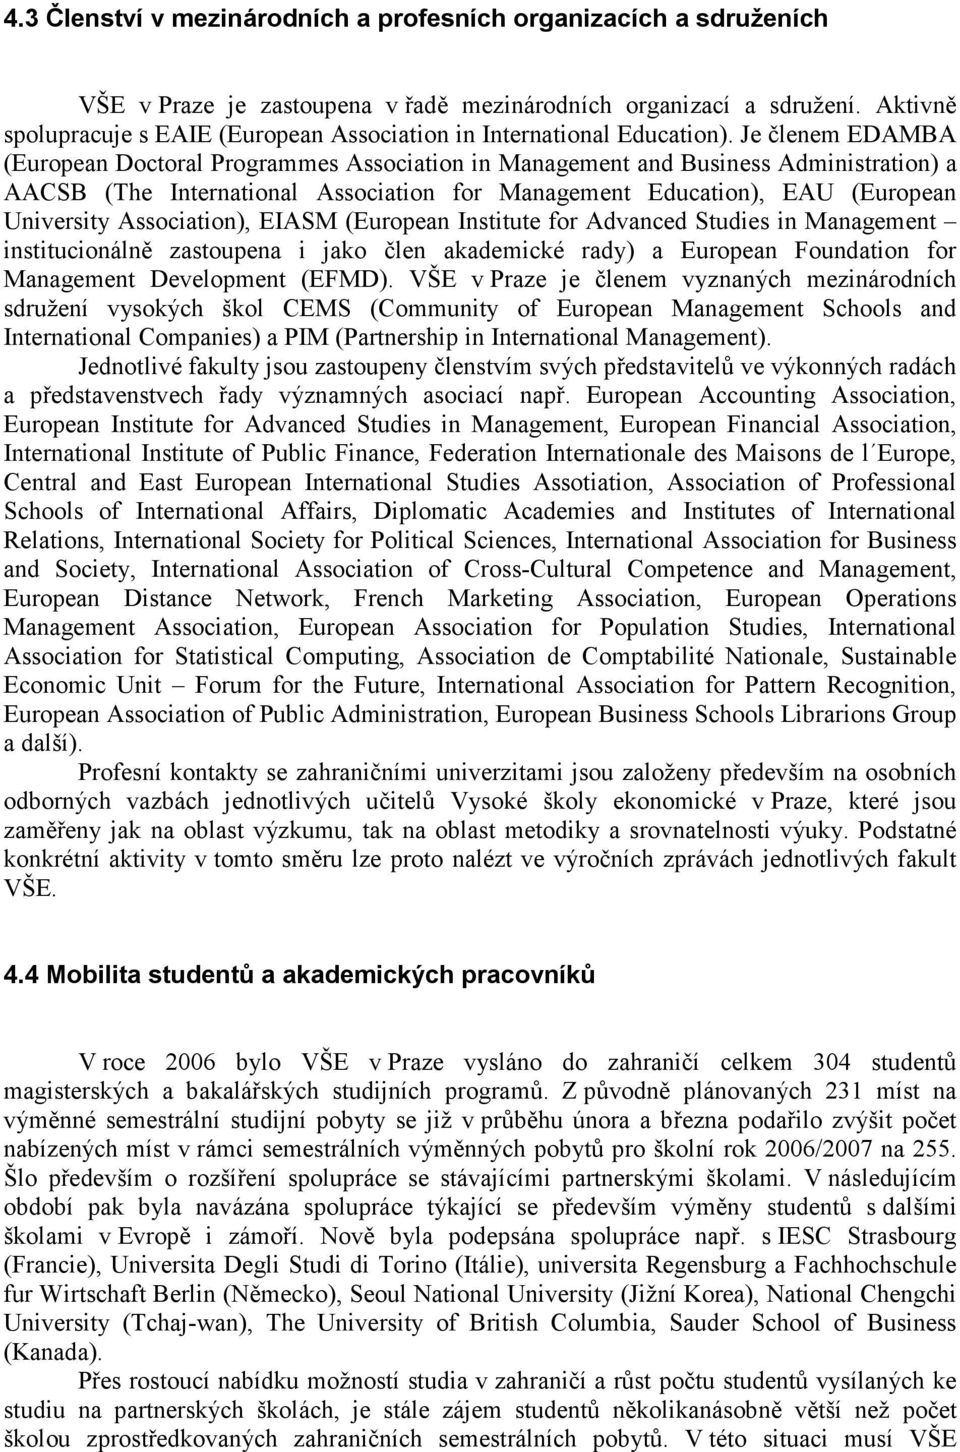 Je členem EDAMBA (European Doctoral Programmes Association in Management and Business Administration) a AACSB (The International Association for Management Education), EAU (European University